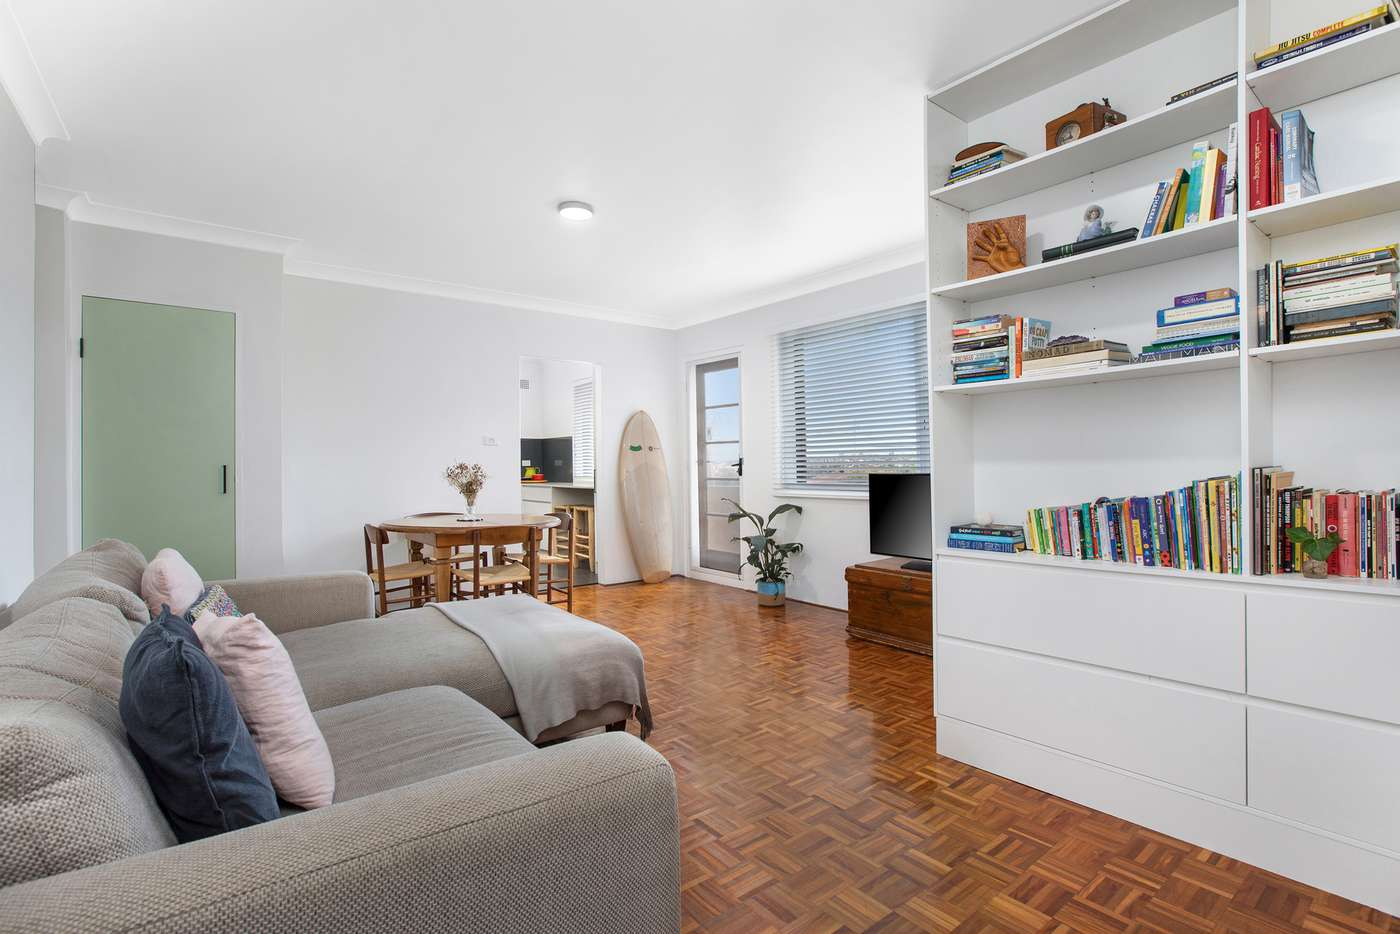 Main view of Homely apartment listing, 3/4 Second Avenue, Maroubra NSW 2035